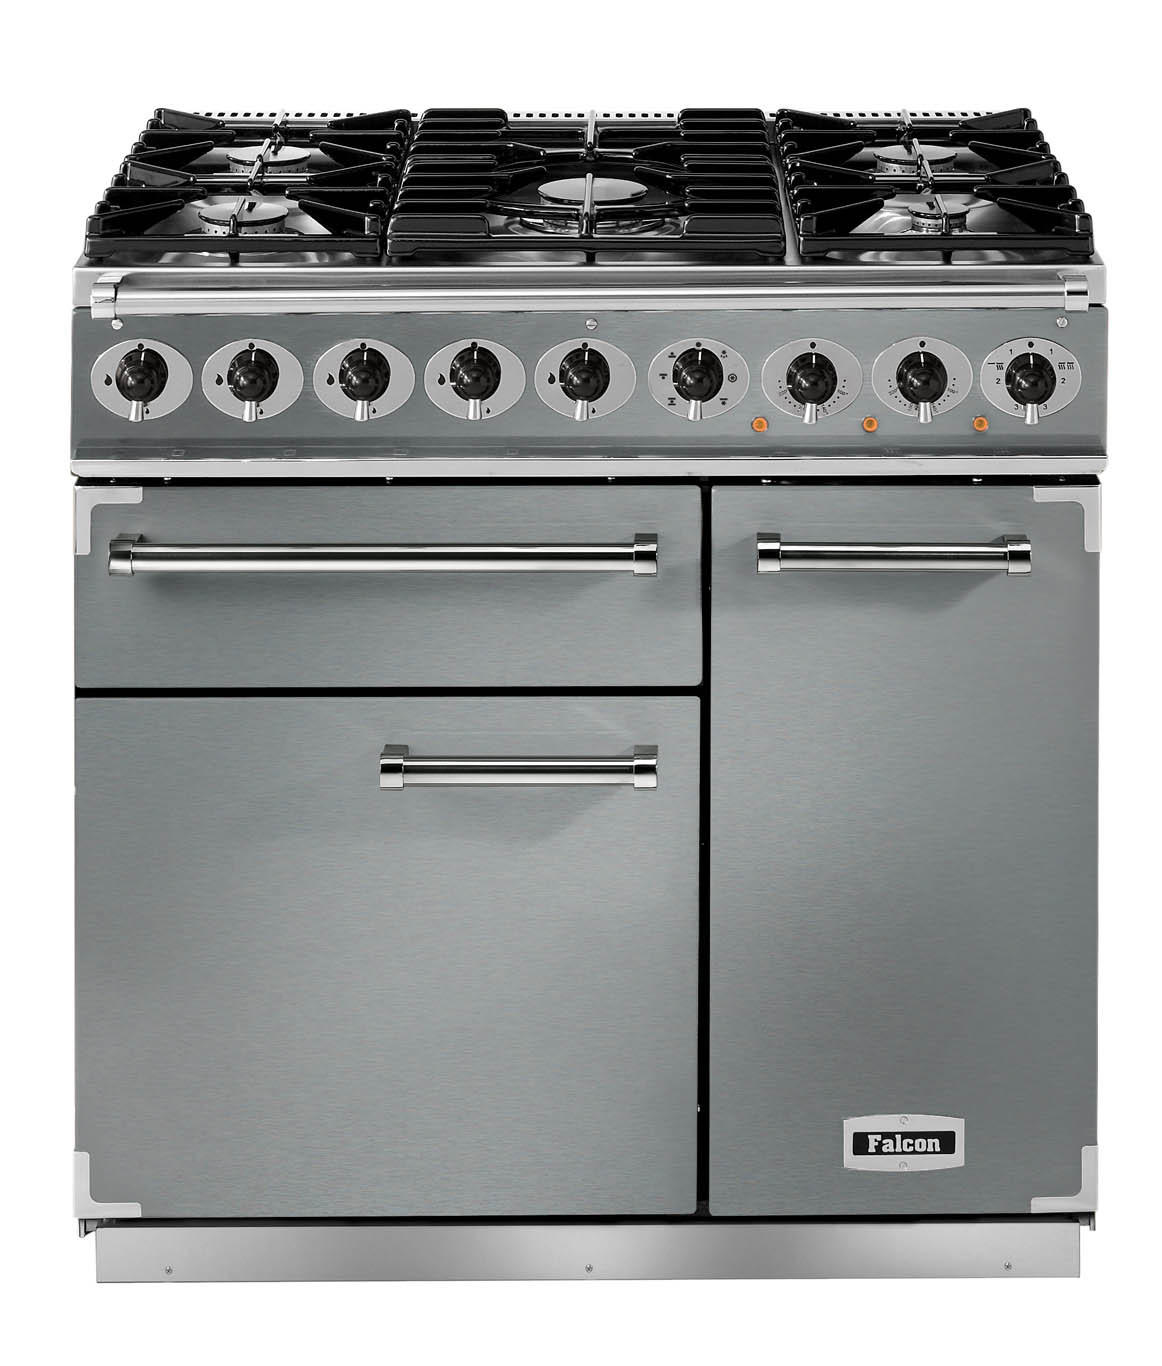 Falcon Deluxe 900 Dual Fuel Stainless Steel/Chrome Range Cooker with Matt Pan Supports